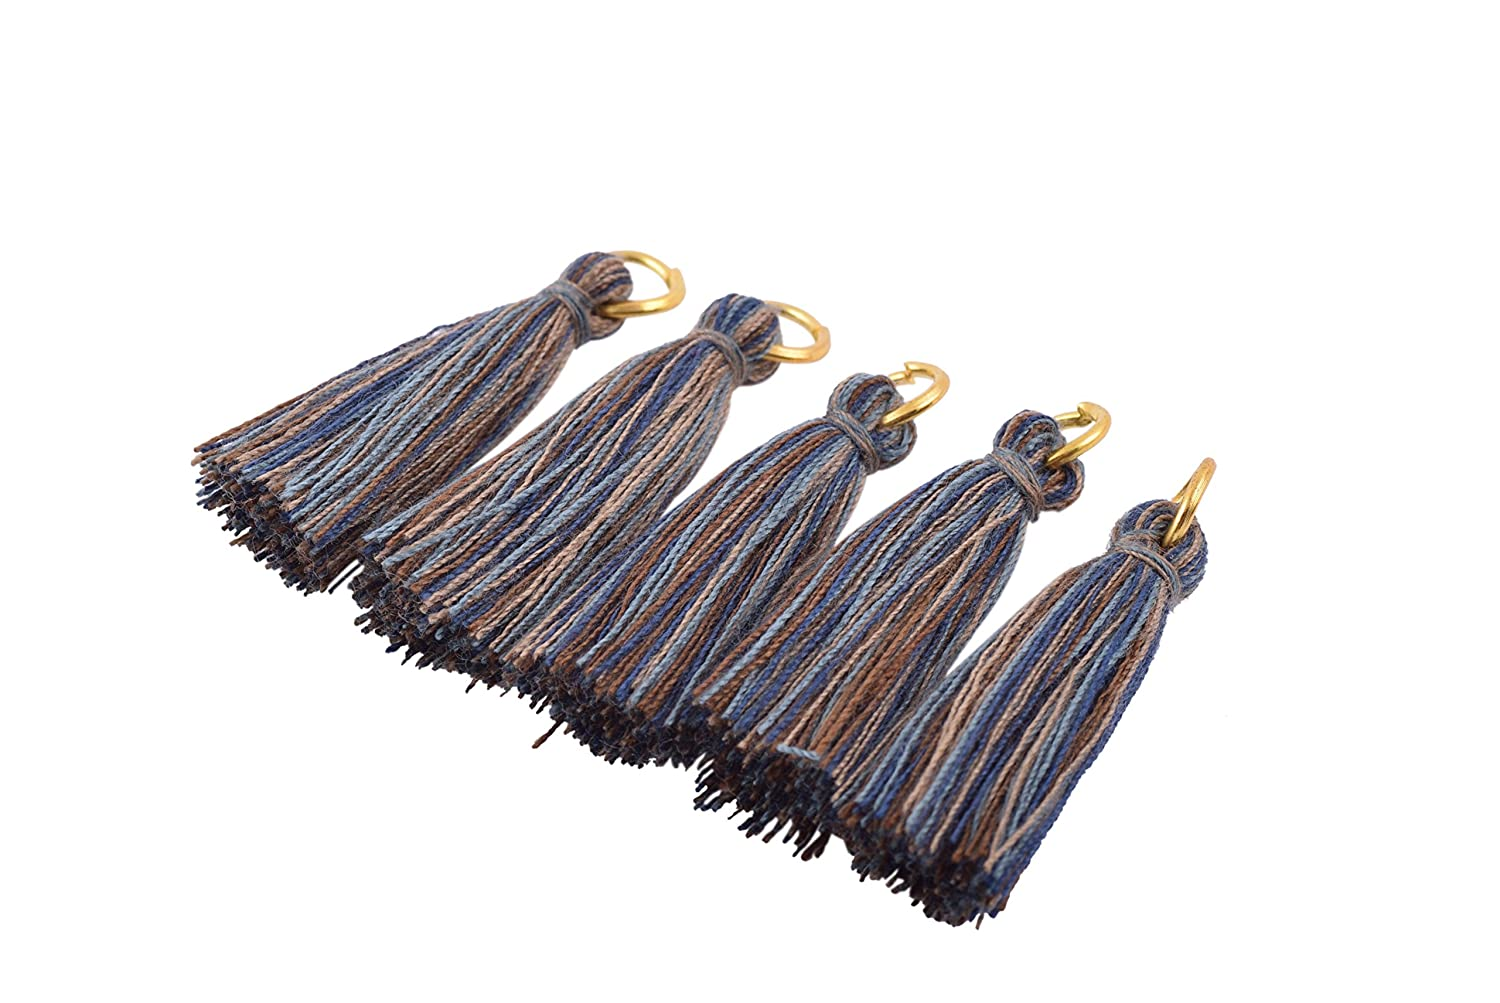 3.5cm KONMAY 50PCS 1.4 Khaki Soft Handmade Silky Tiny Craft Tassels With Golden Jump Ring for DIY Projects